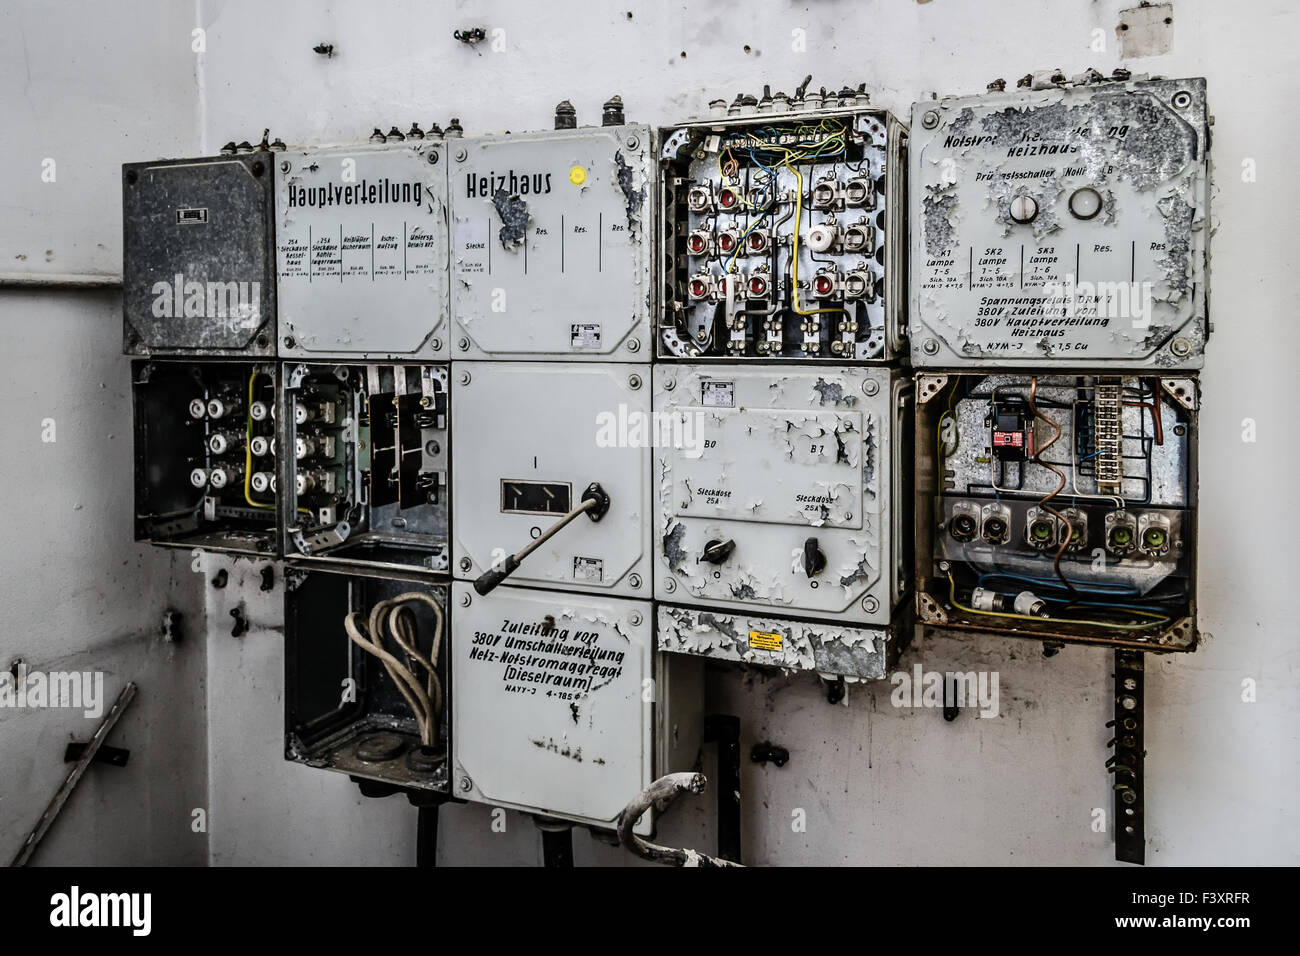 old fuse box F3XRFR old fuse box stock photo, royalty free image 88485035 alamy how to reset old fuse box at bayanpartner.co